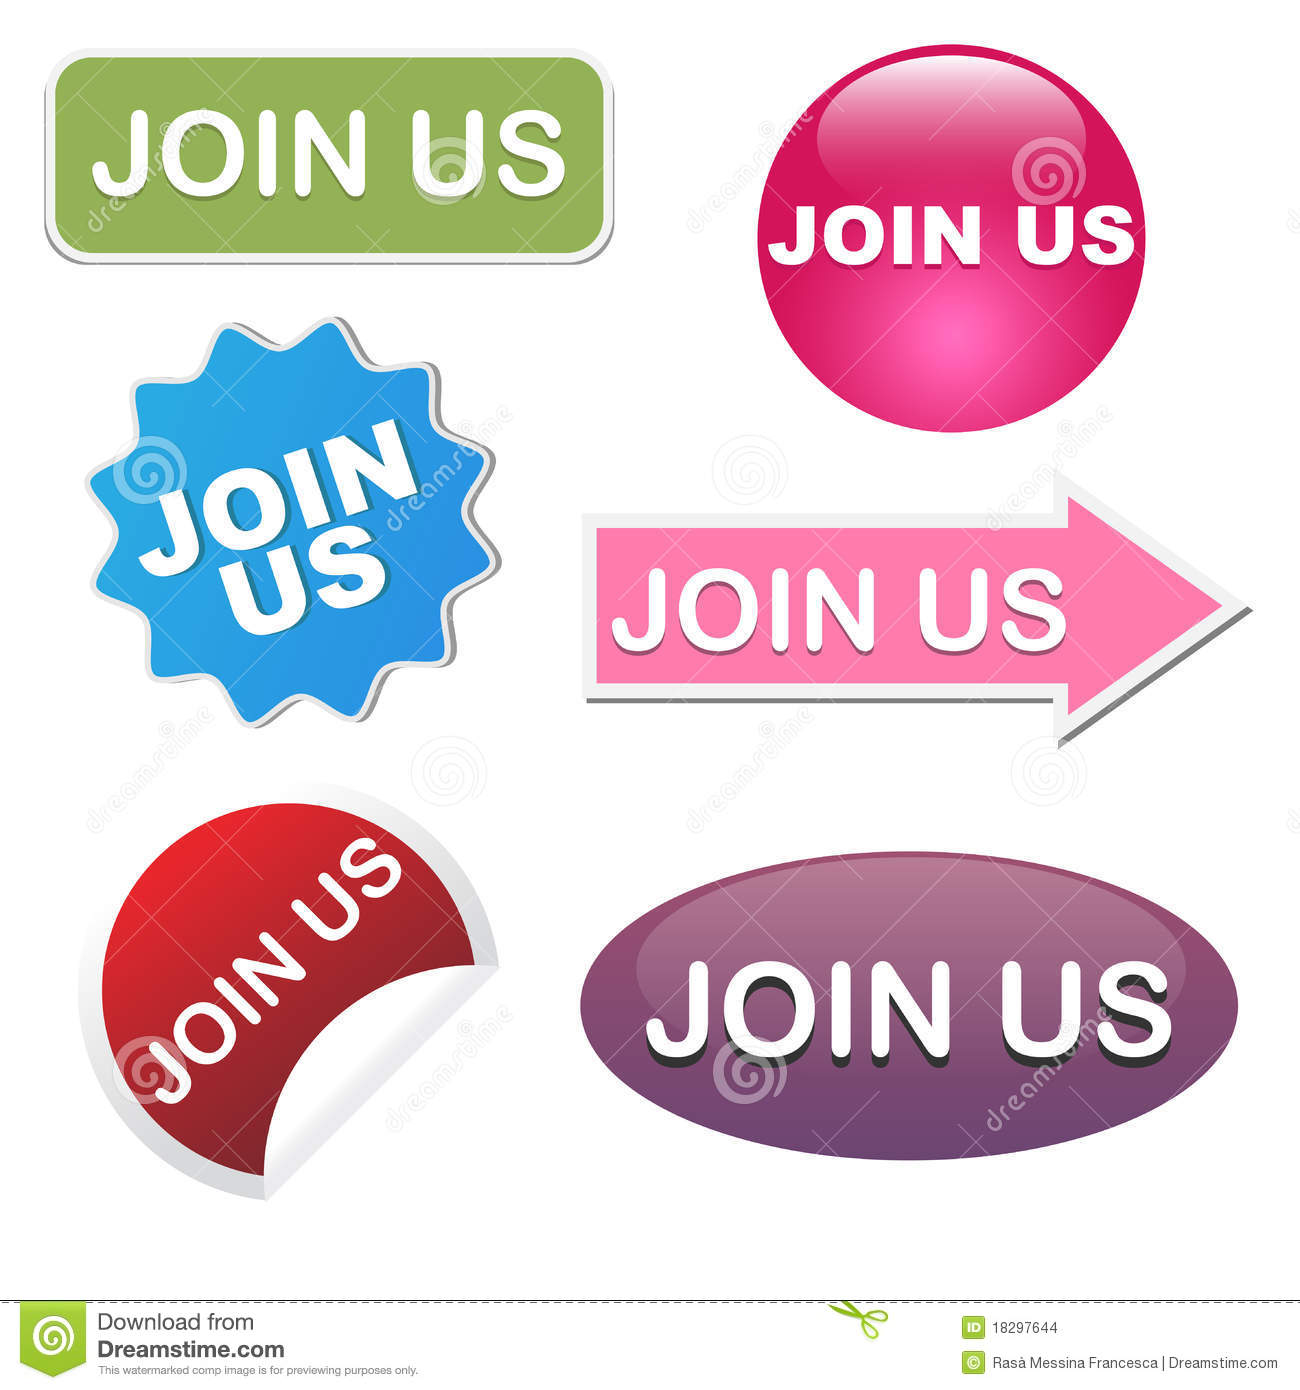 Join us icons